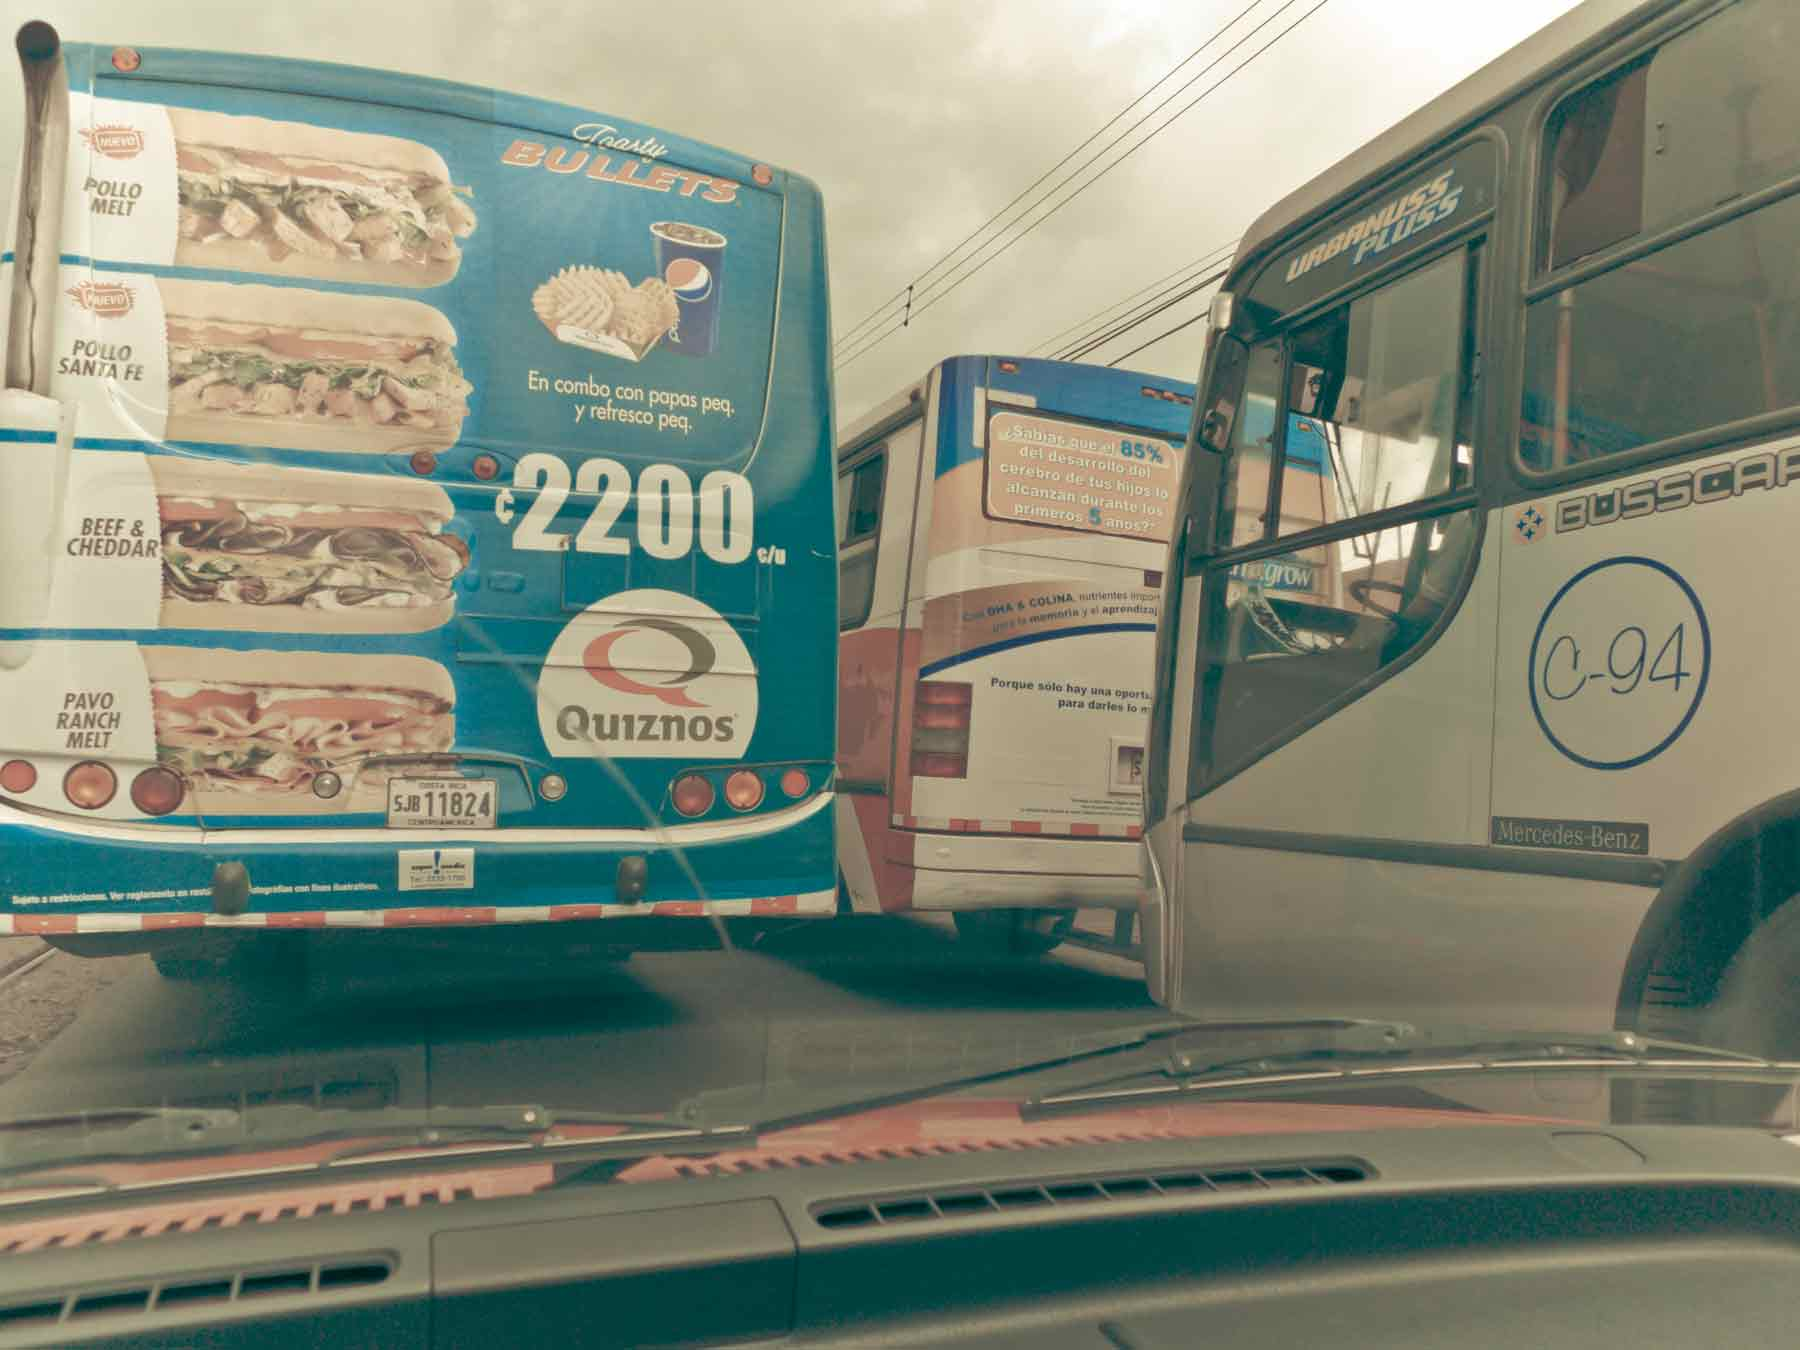 driving in the central valley, costa rica, surrounded by buses